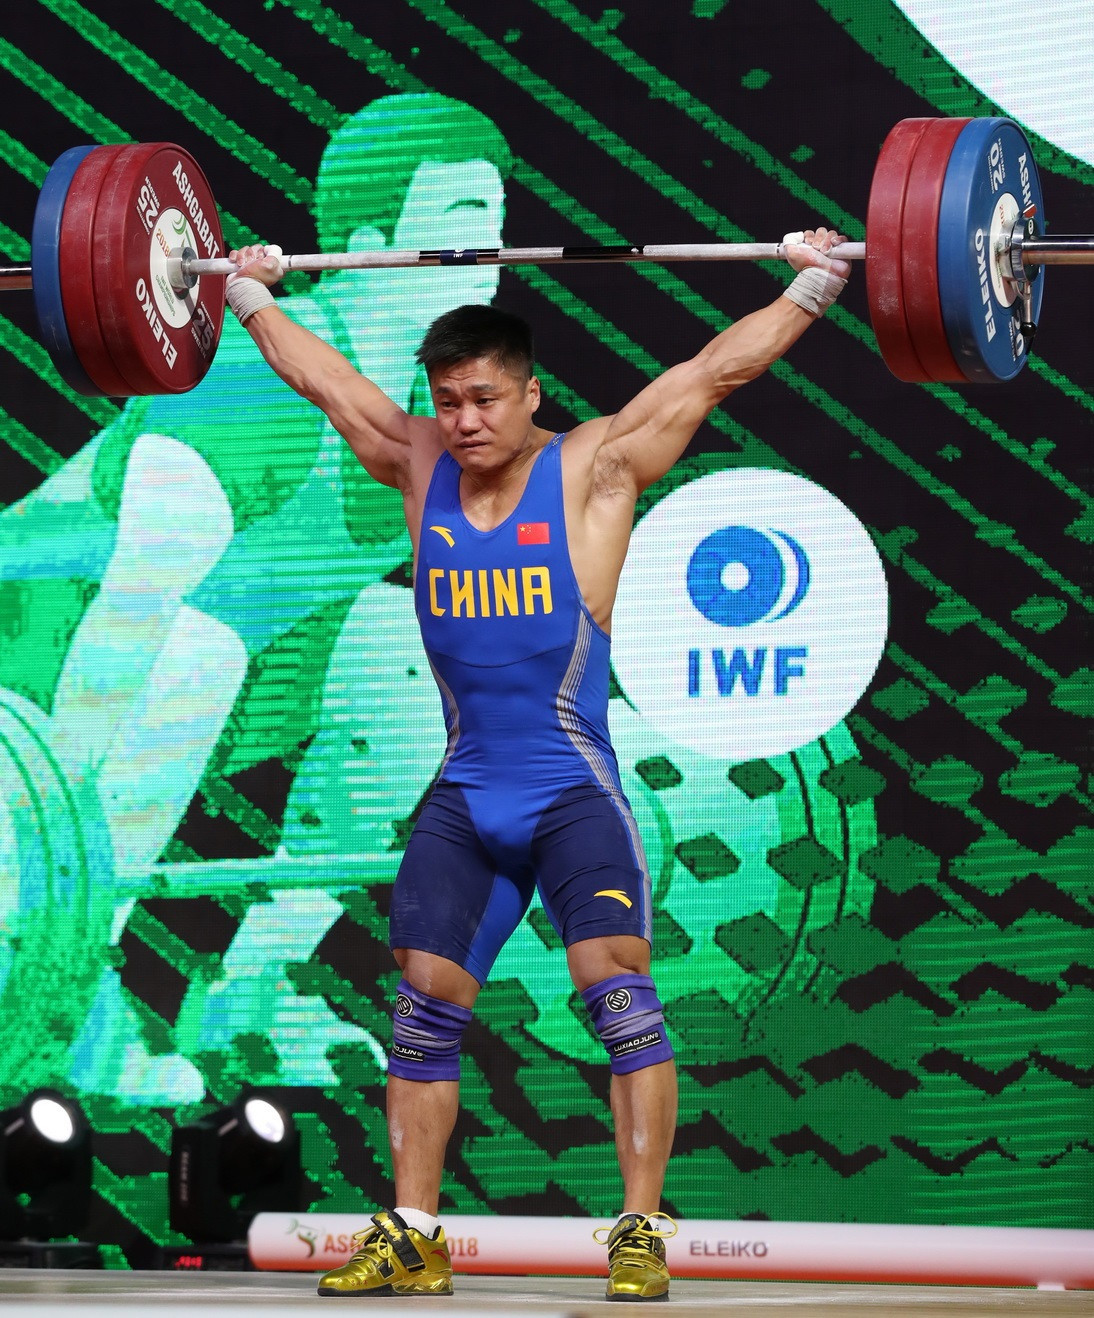 China's Lyu Xiaojun set a world standard total to win the overall men's 81kg gold medal ©IWF